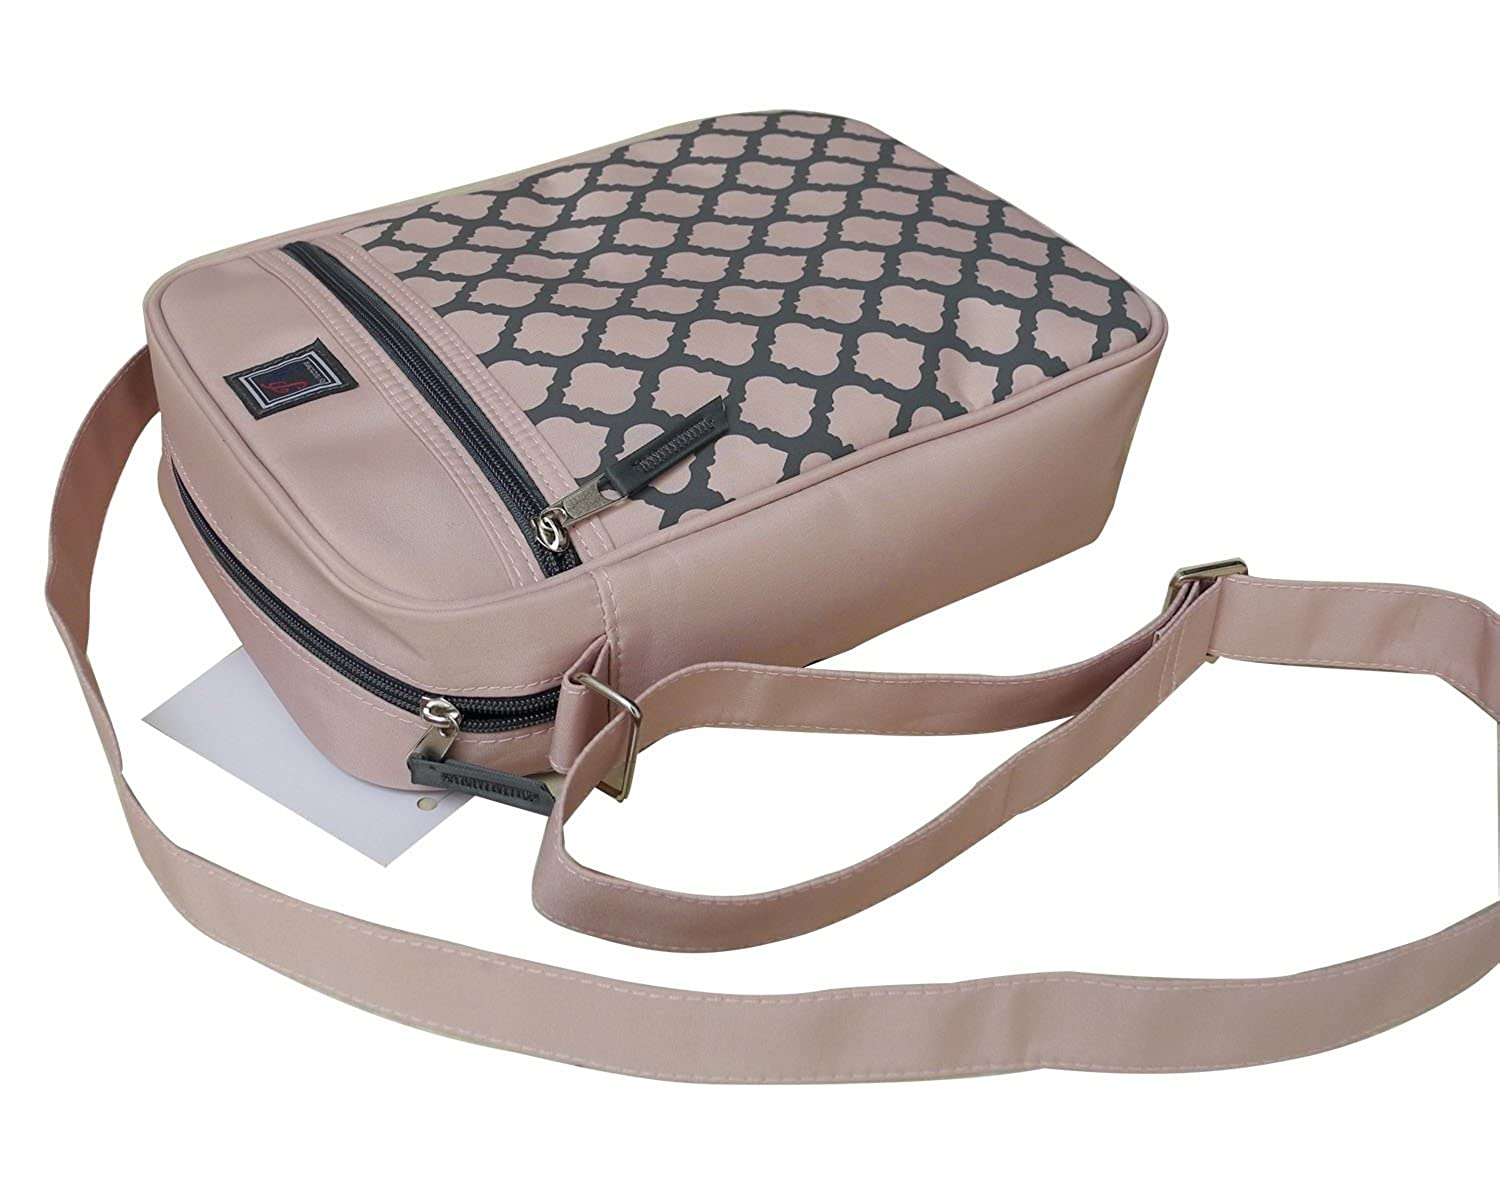 3672b3e32522 Messenger Sports Bag w/clear window pocket for tablet use